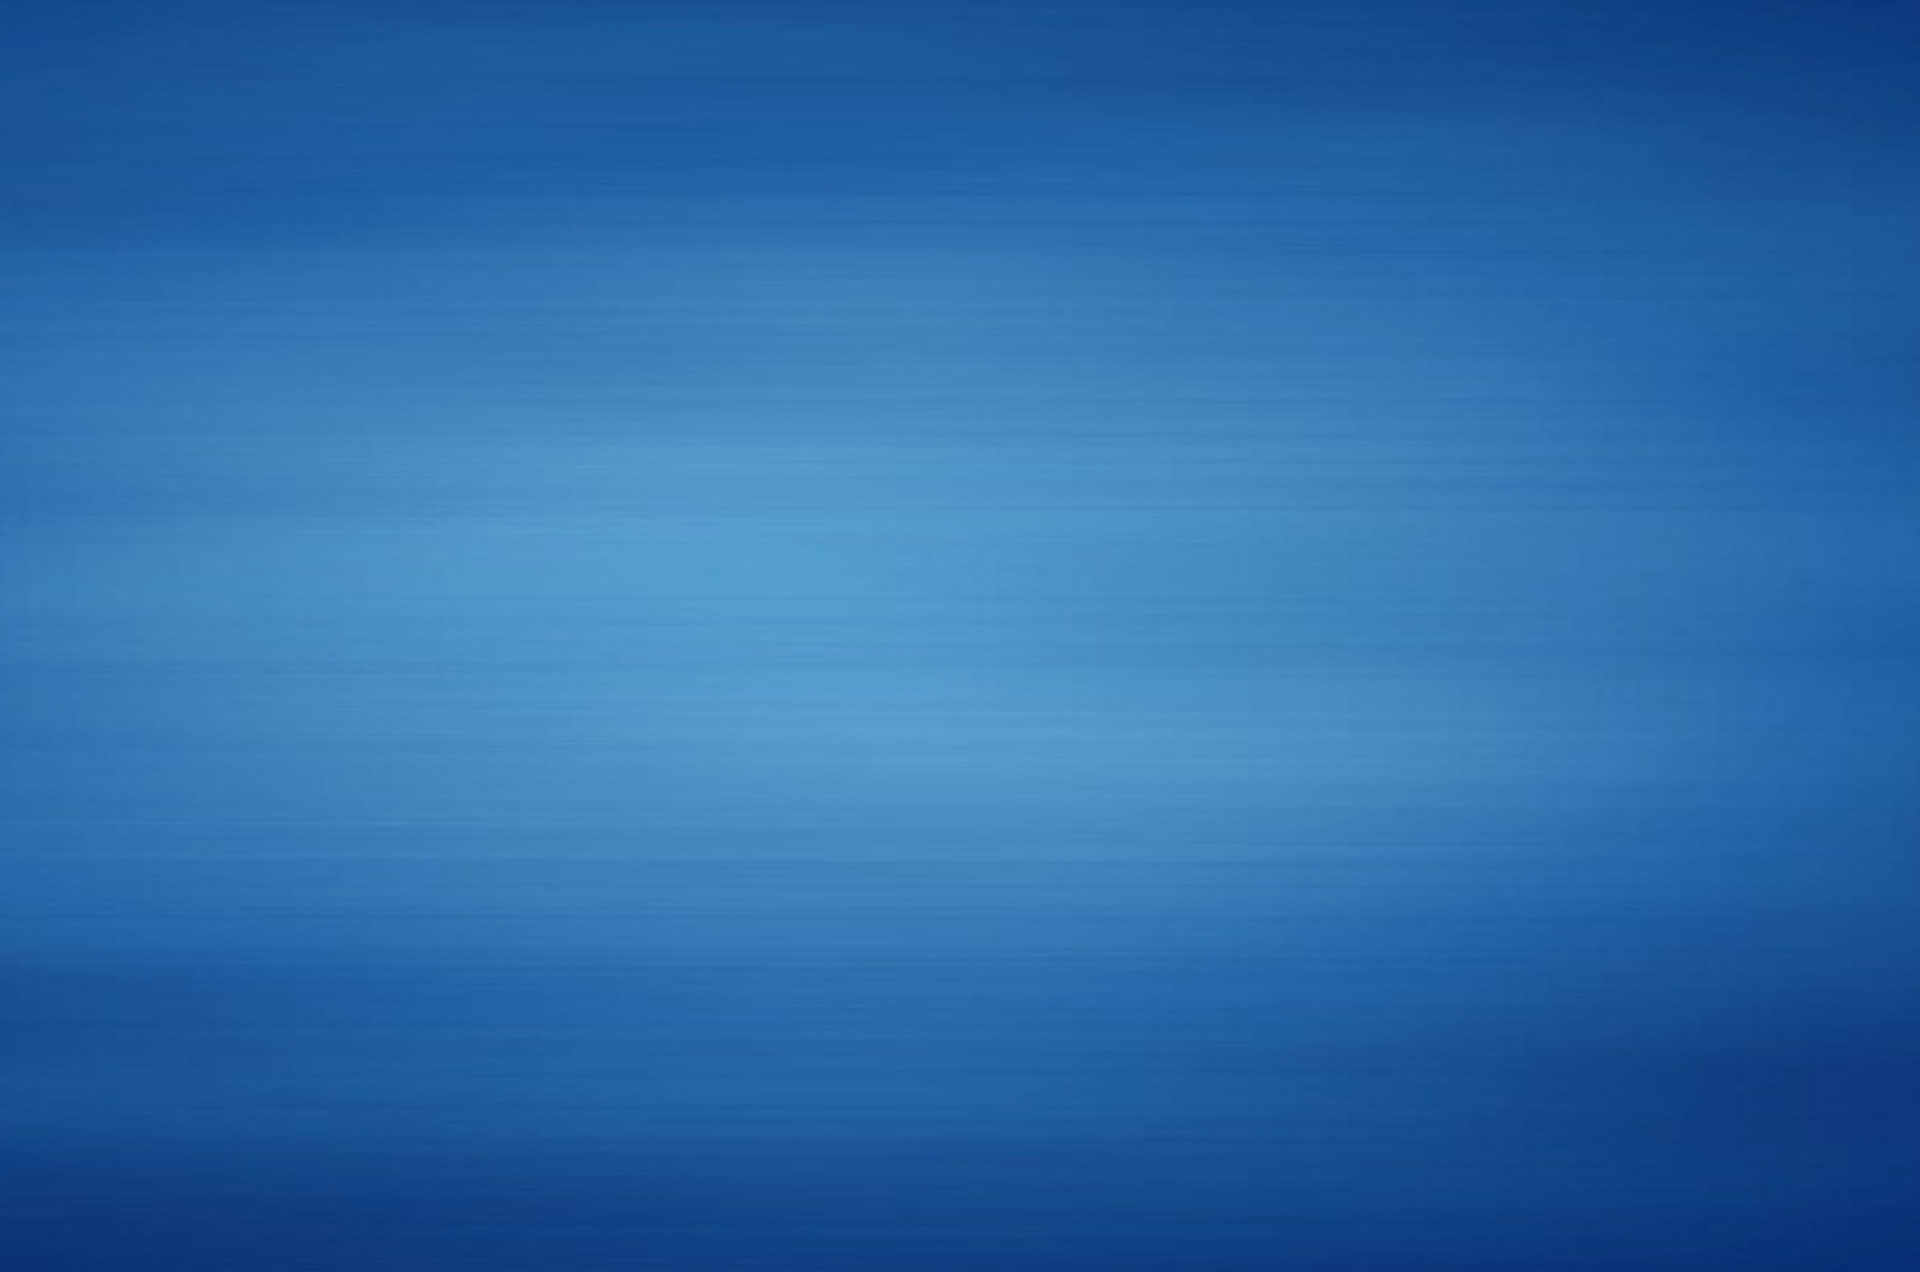 Blue Abstract Background Stock Photo HD   Public Domain Pictures 1920x1272